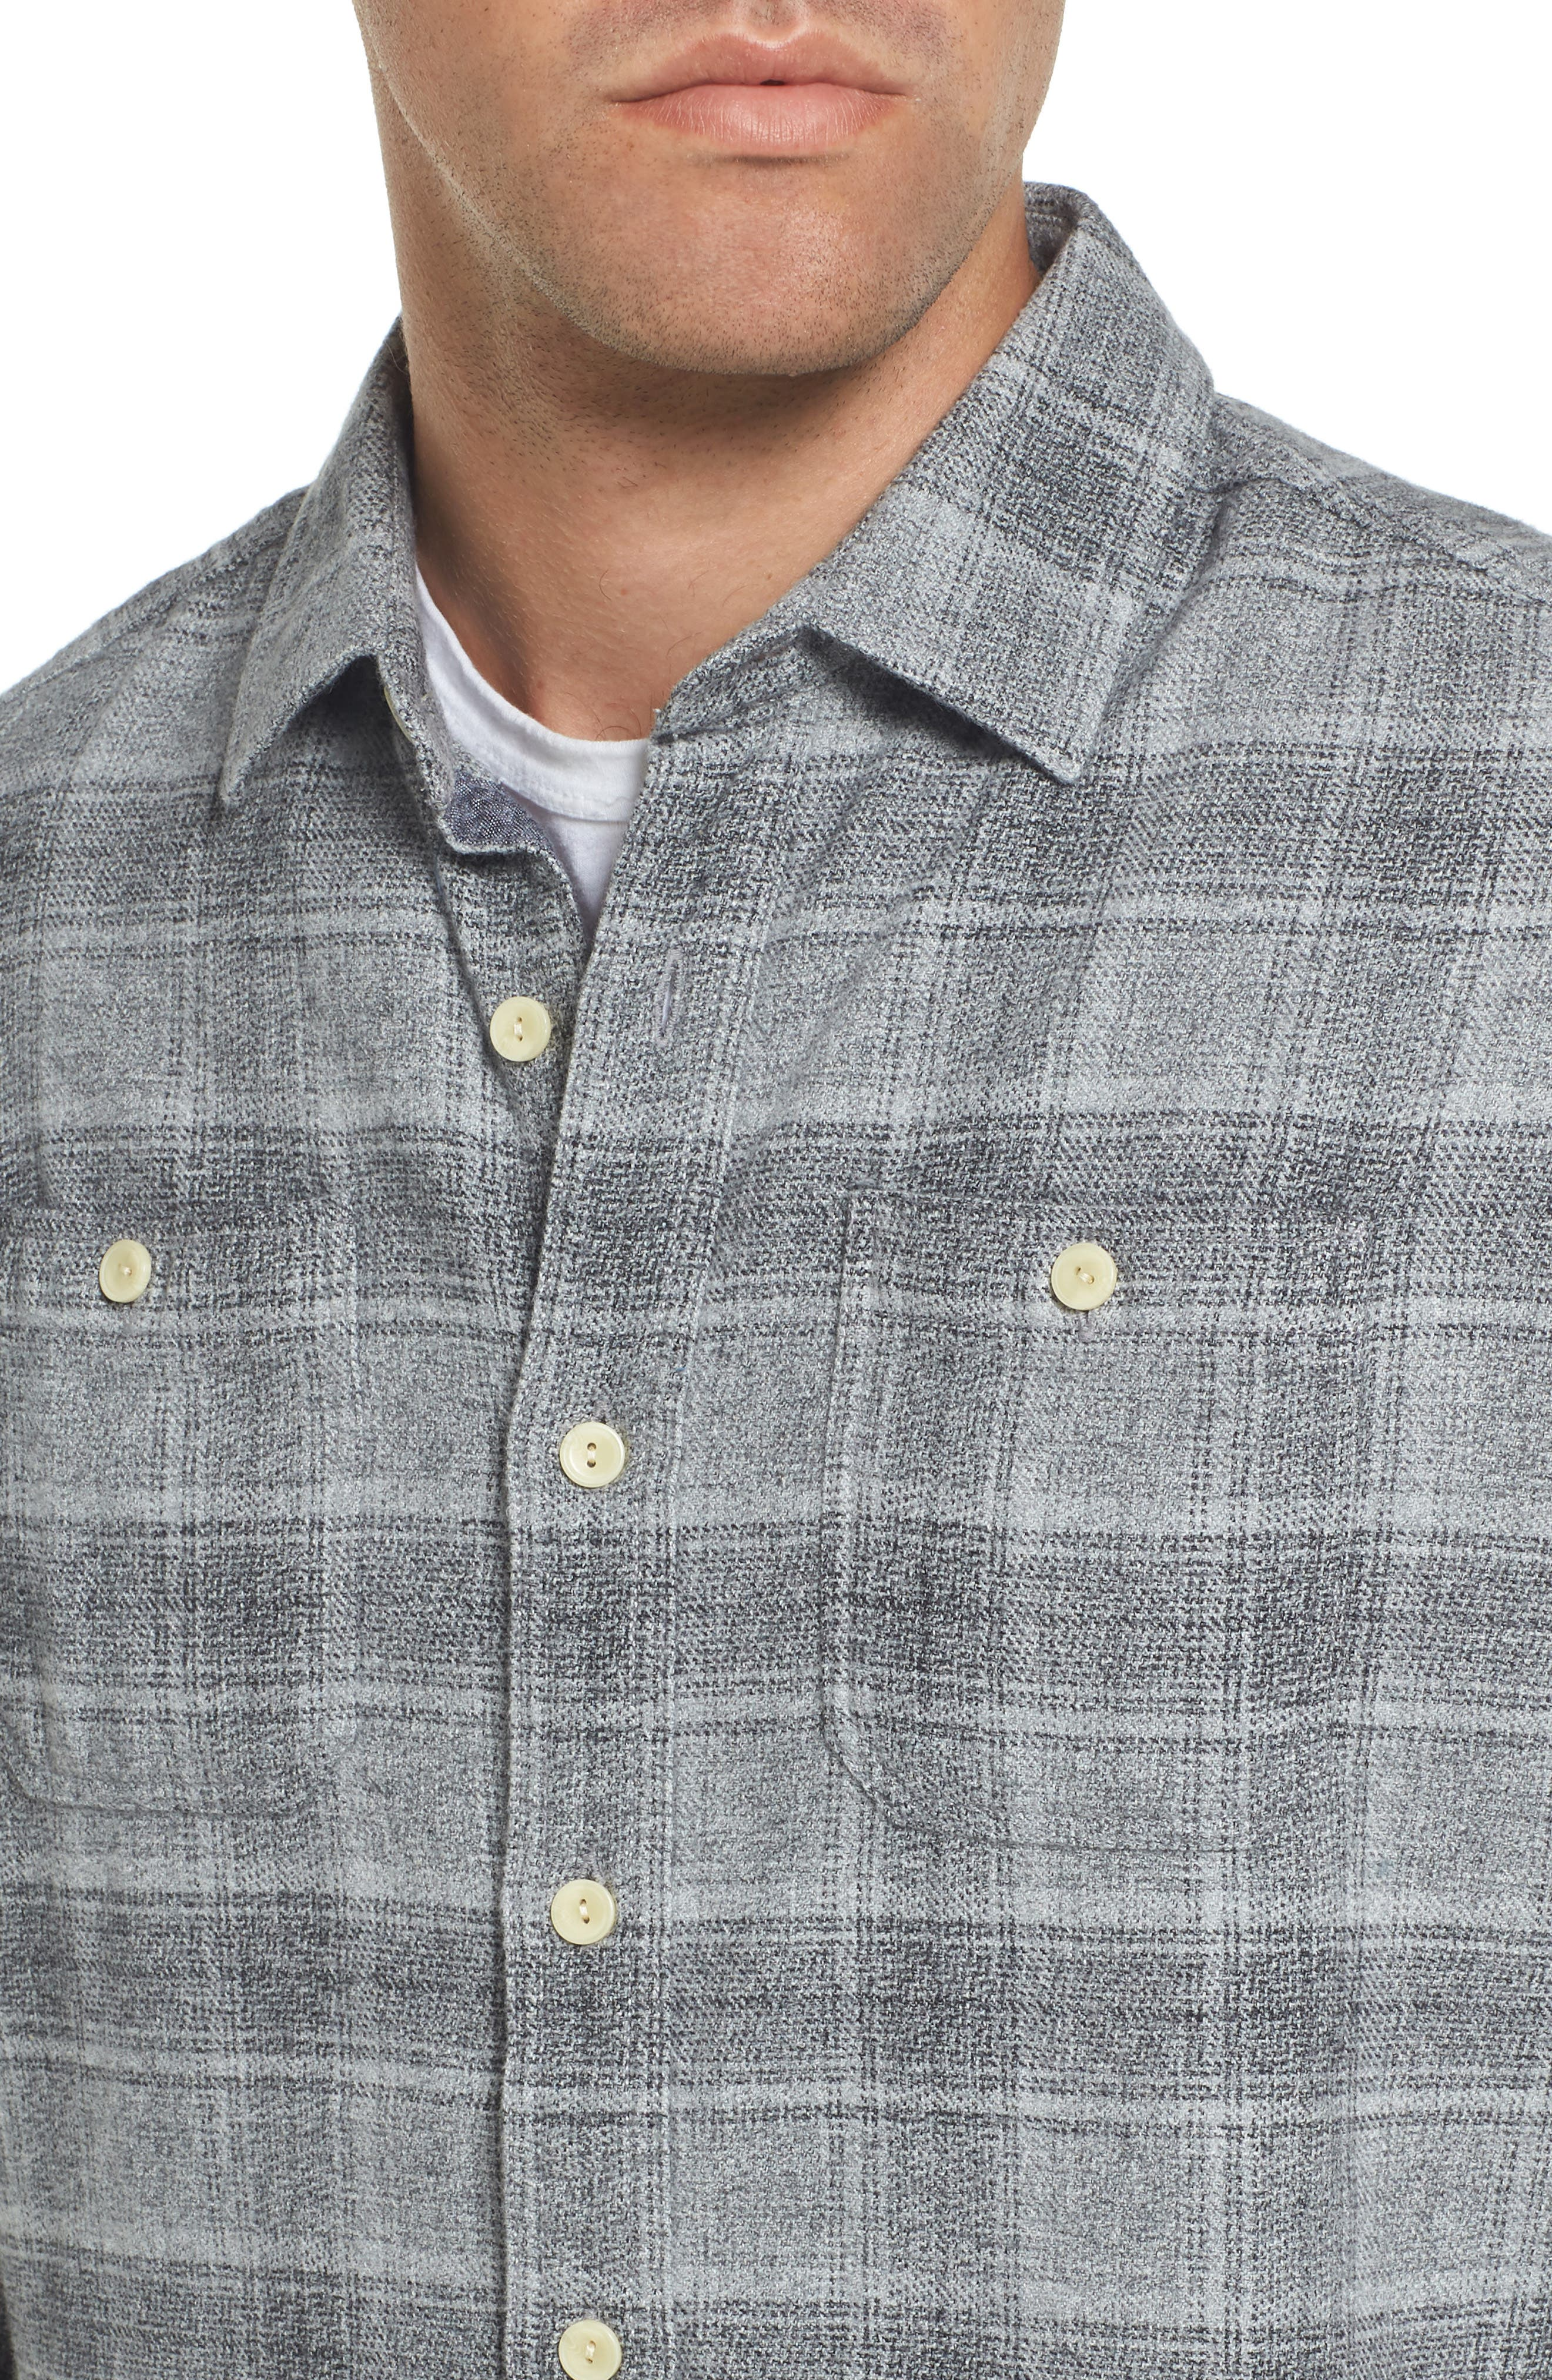 Charles Heritage Modern Fit Flannel Sport Shirt,                             Alternate thumbnail 4, color,                             Gray Charcoal